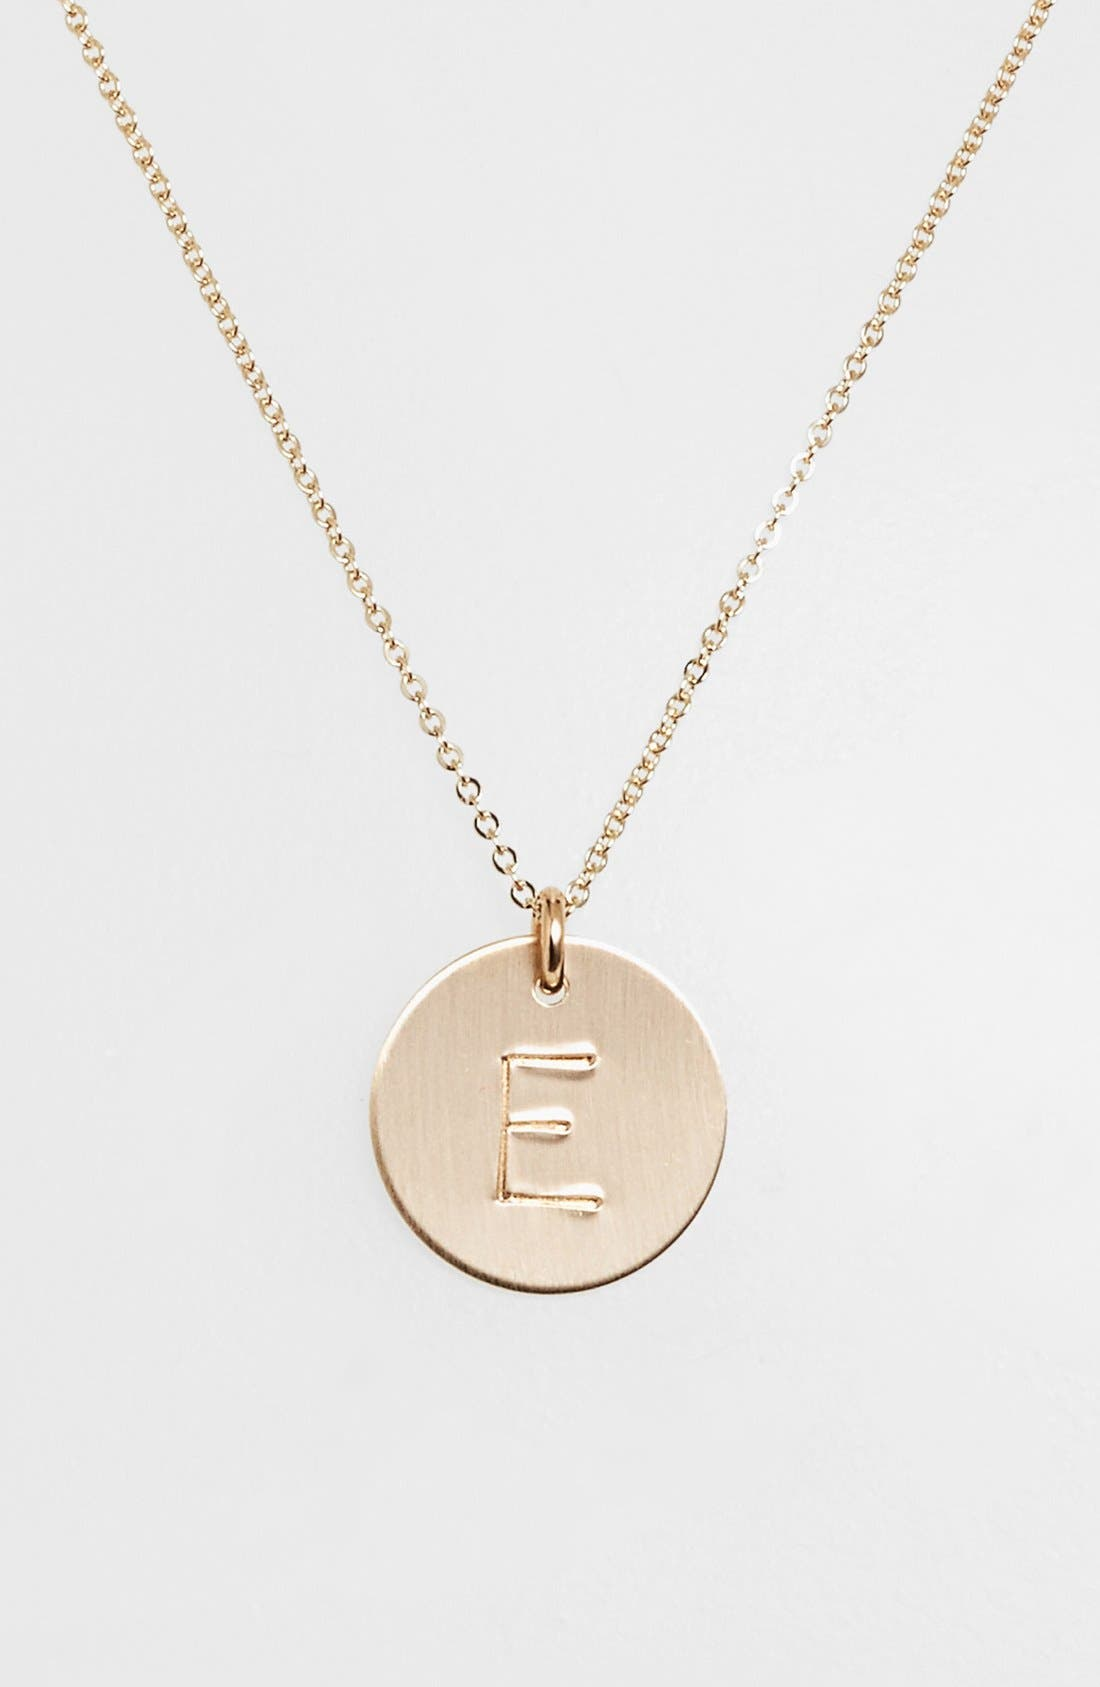 14k-Gold Fill Initial Disc Necklace,                             Main thumbnail 1, color,                             14K GOLD FILL E